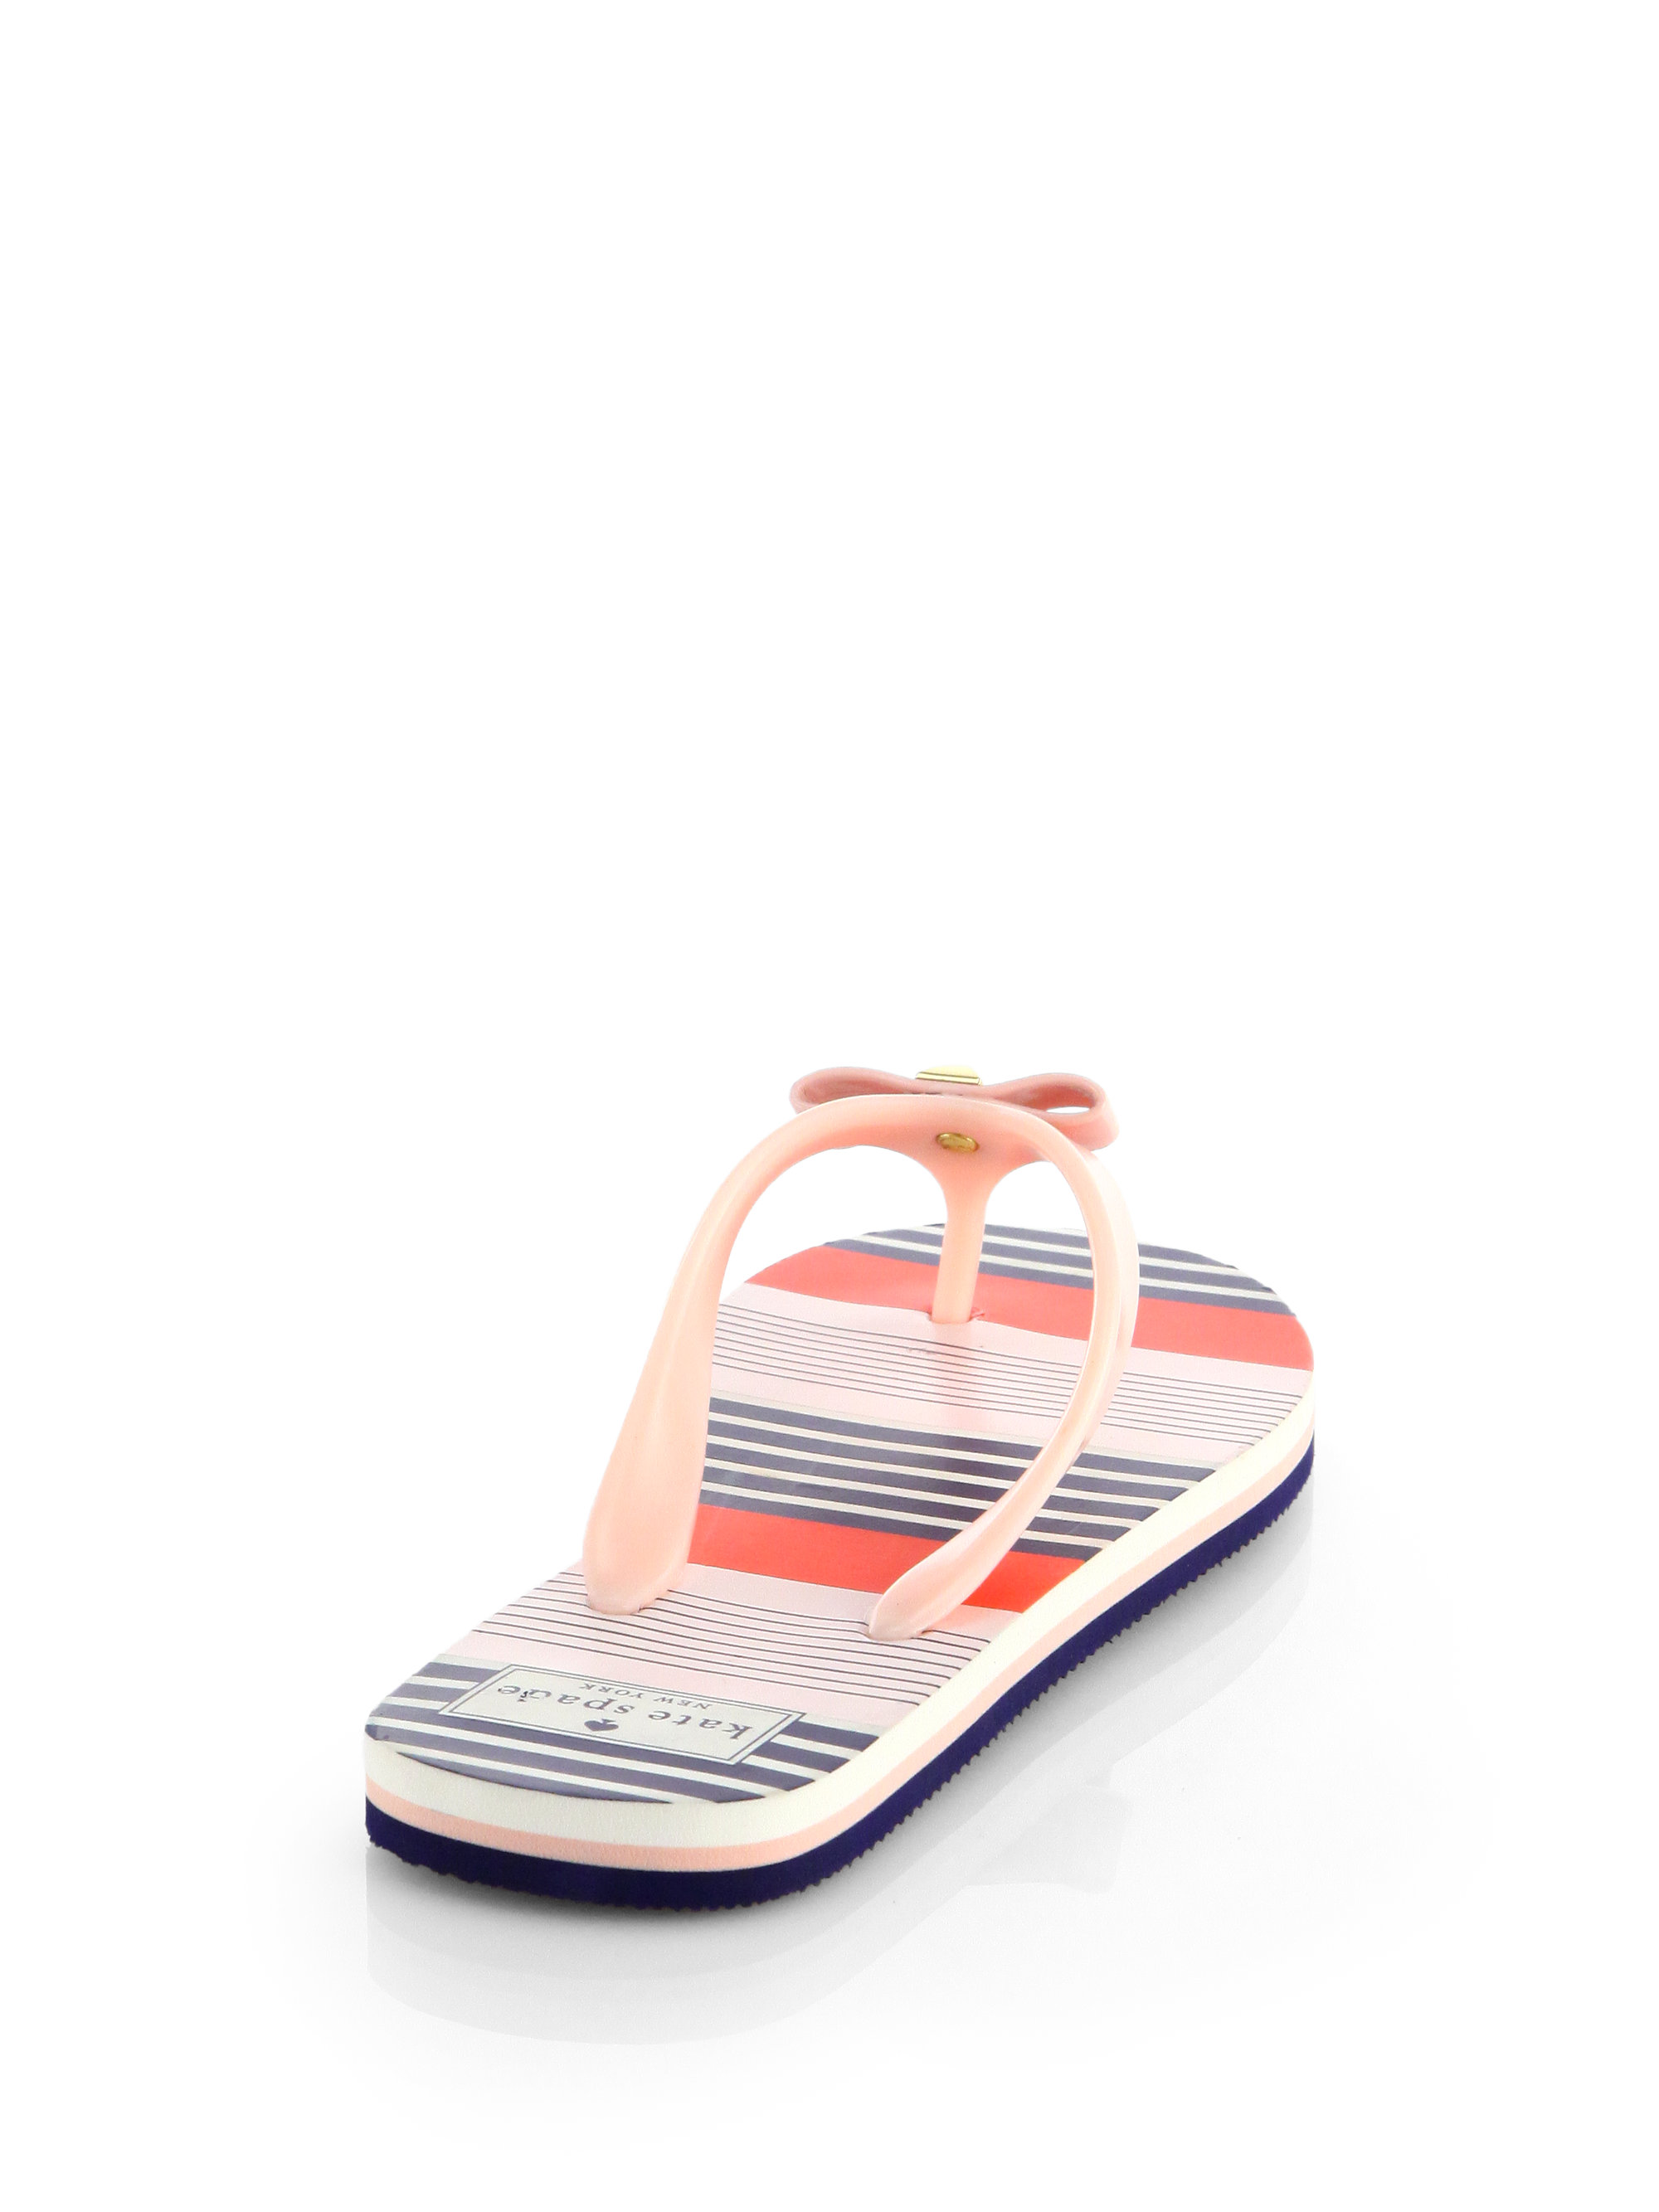 Kate Spade New York Striped Bow Sandals sale how much outlet limited edition cheap sale pay with visa free shipping nicekicks brakhez83